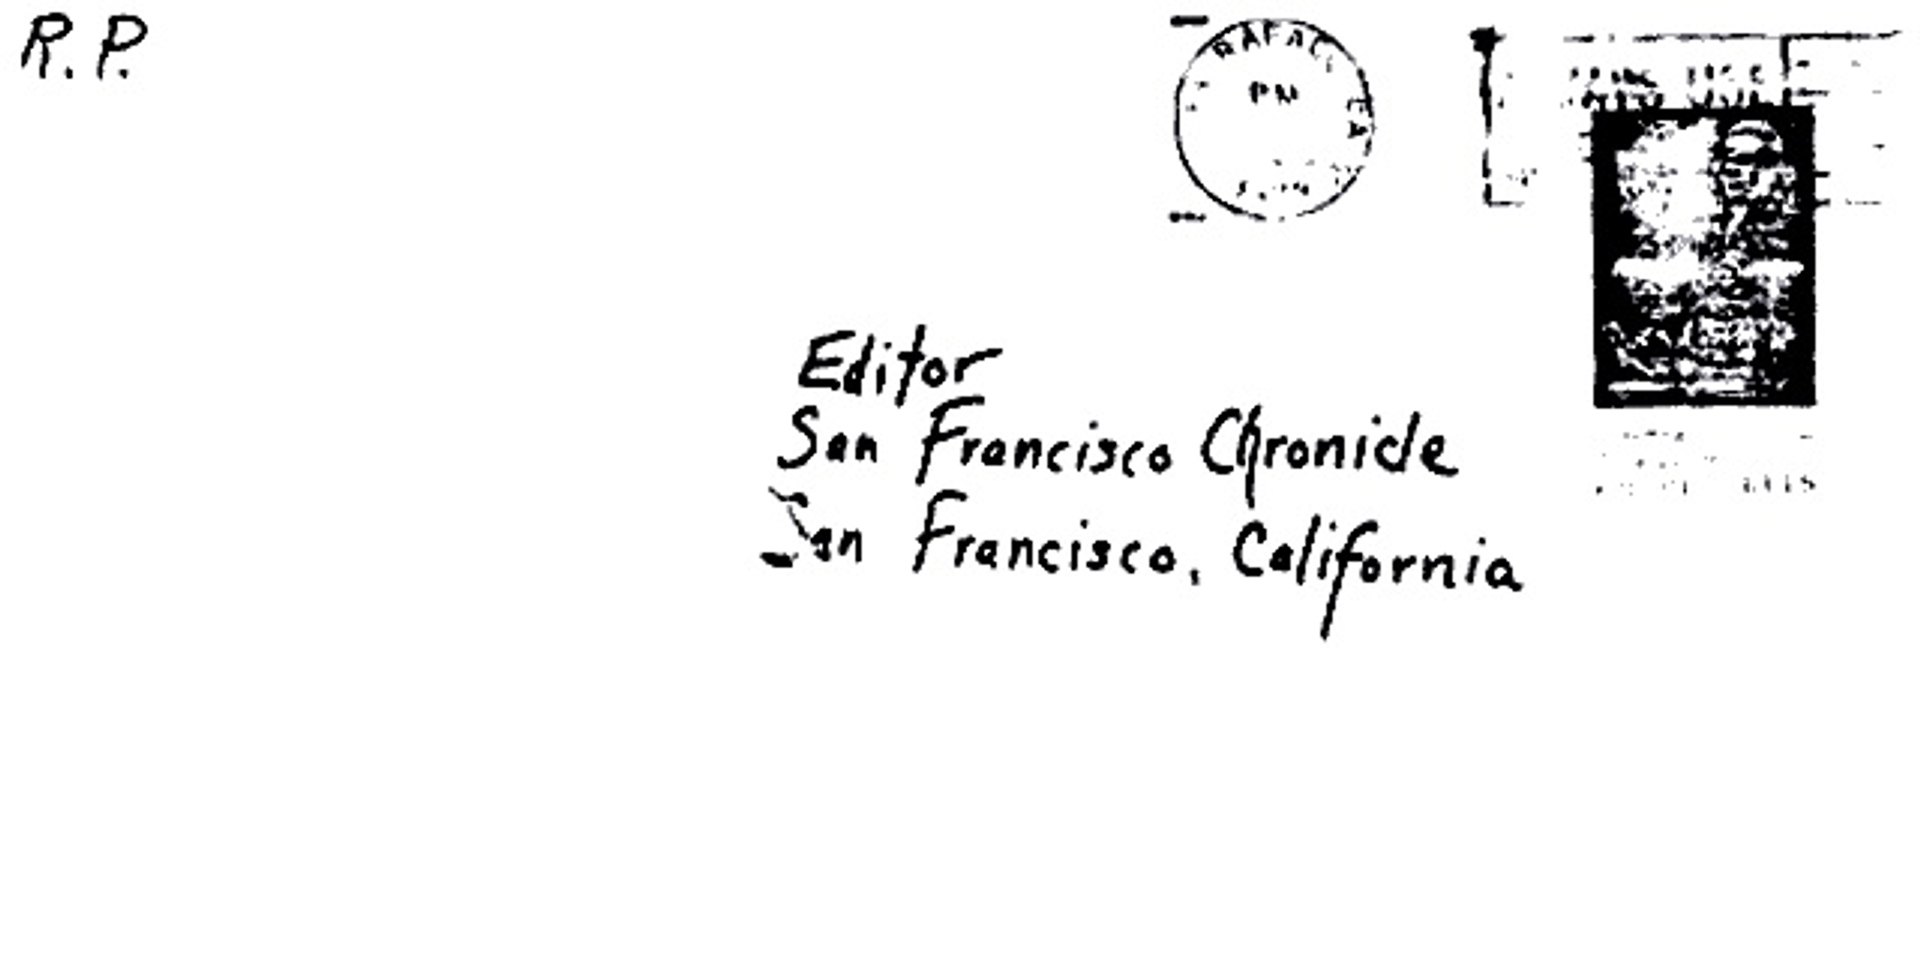 front of envelope 07-08-74